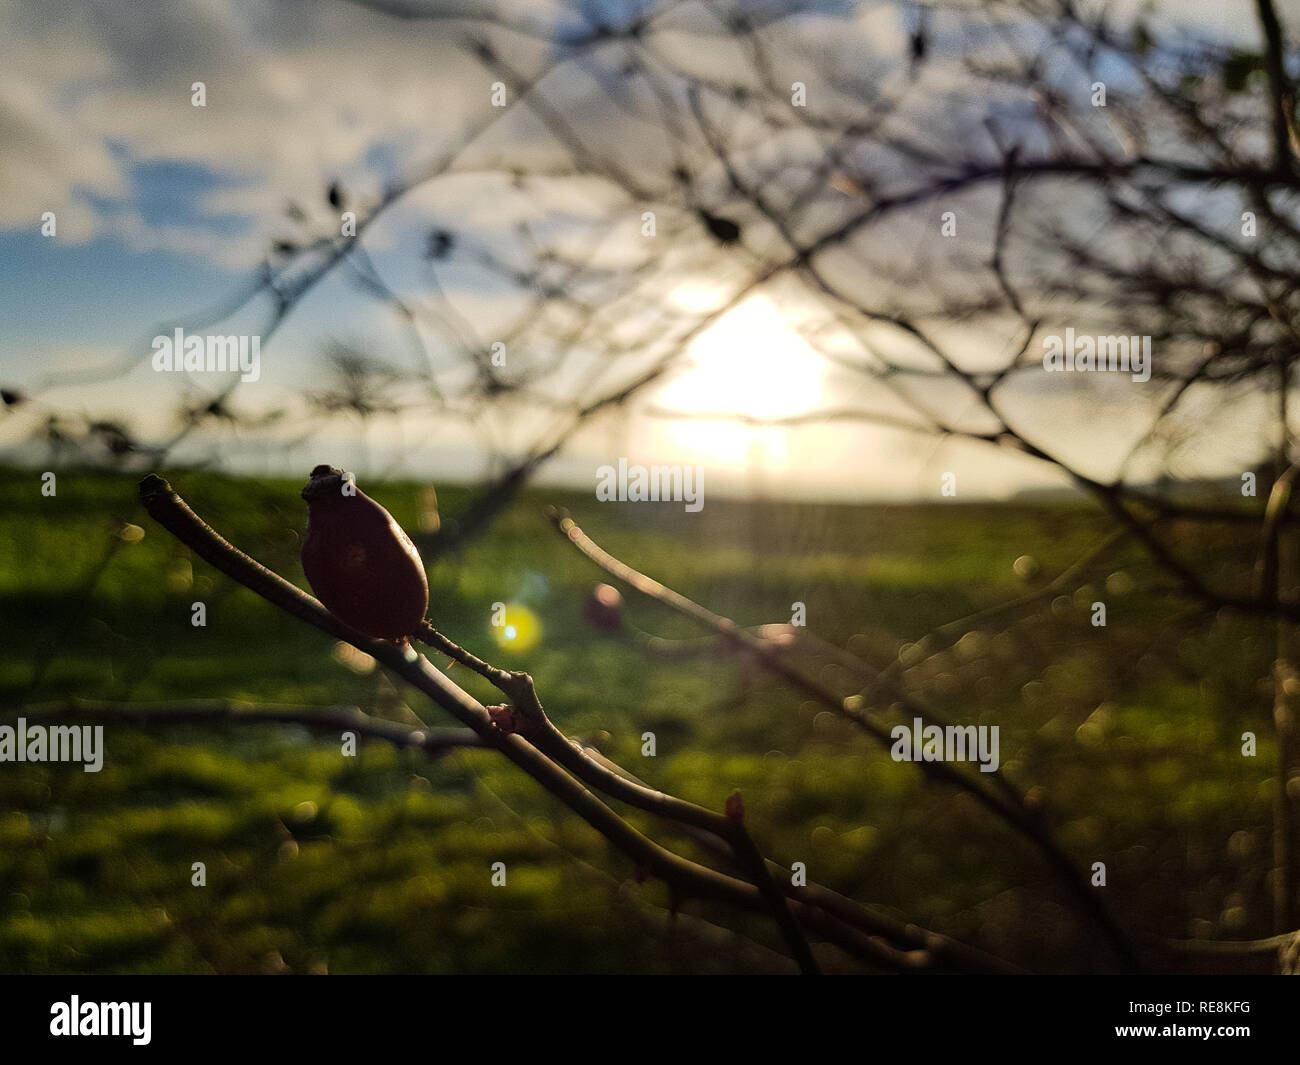 Blurry close up of branches without leaves in the winter a green field and the cloudy blue sky in the back - Stock Image